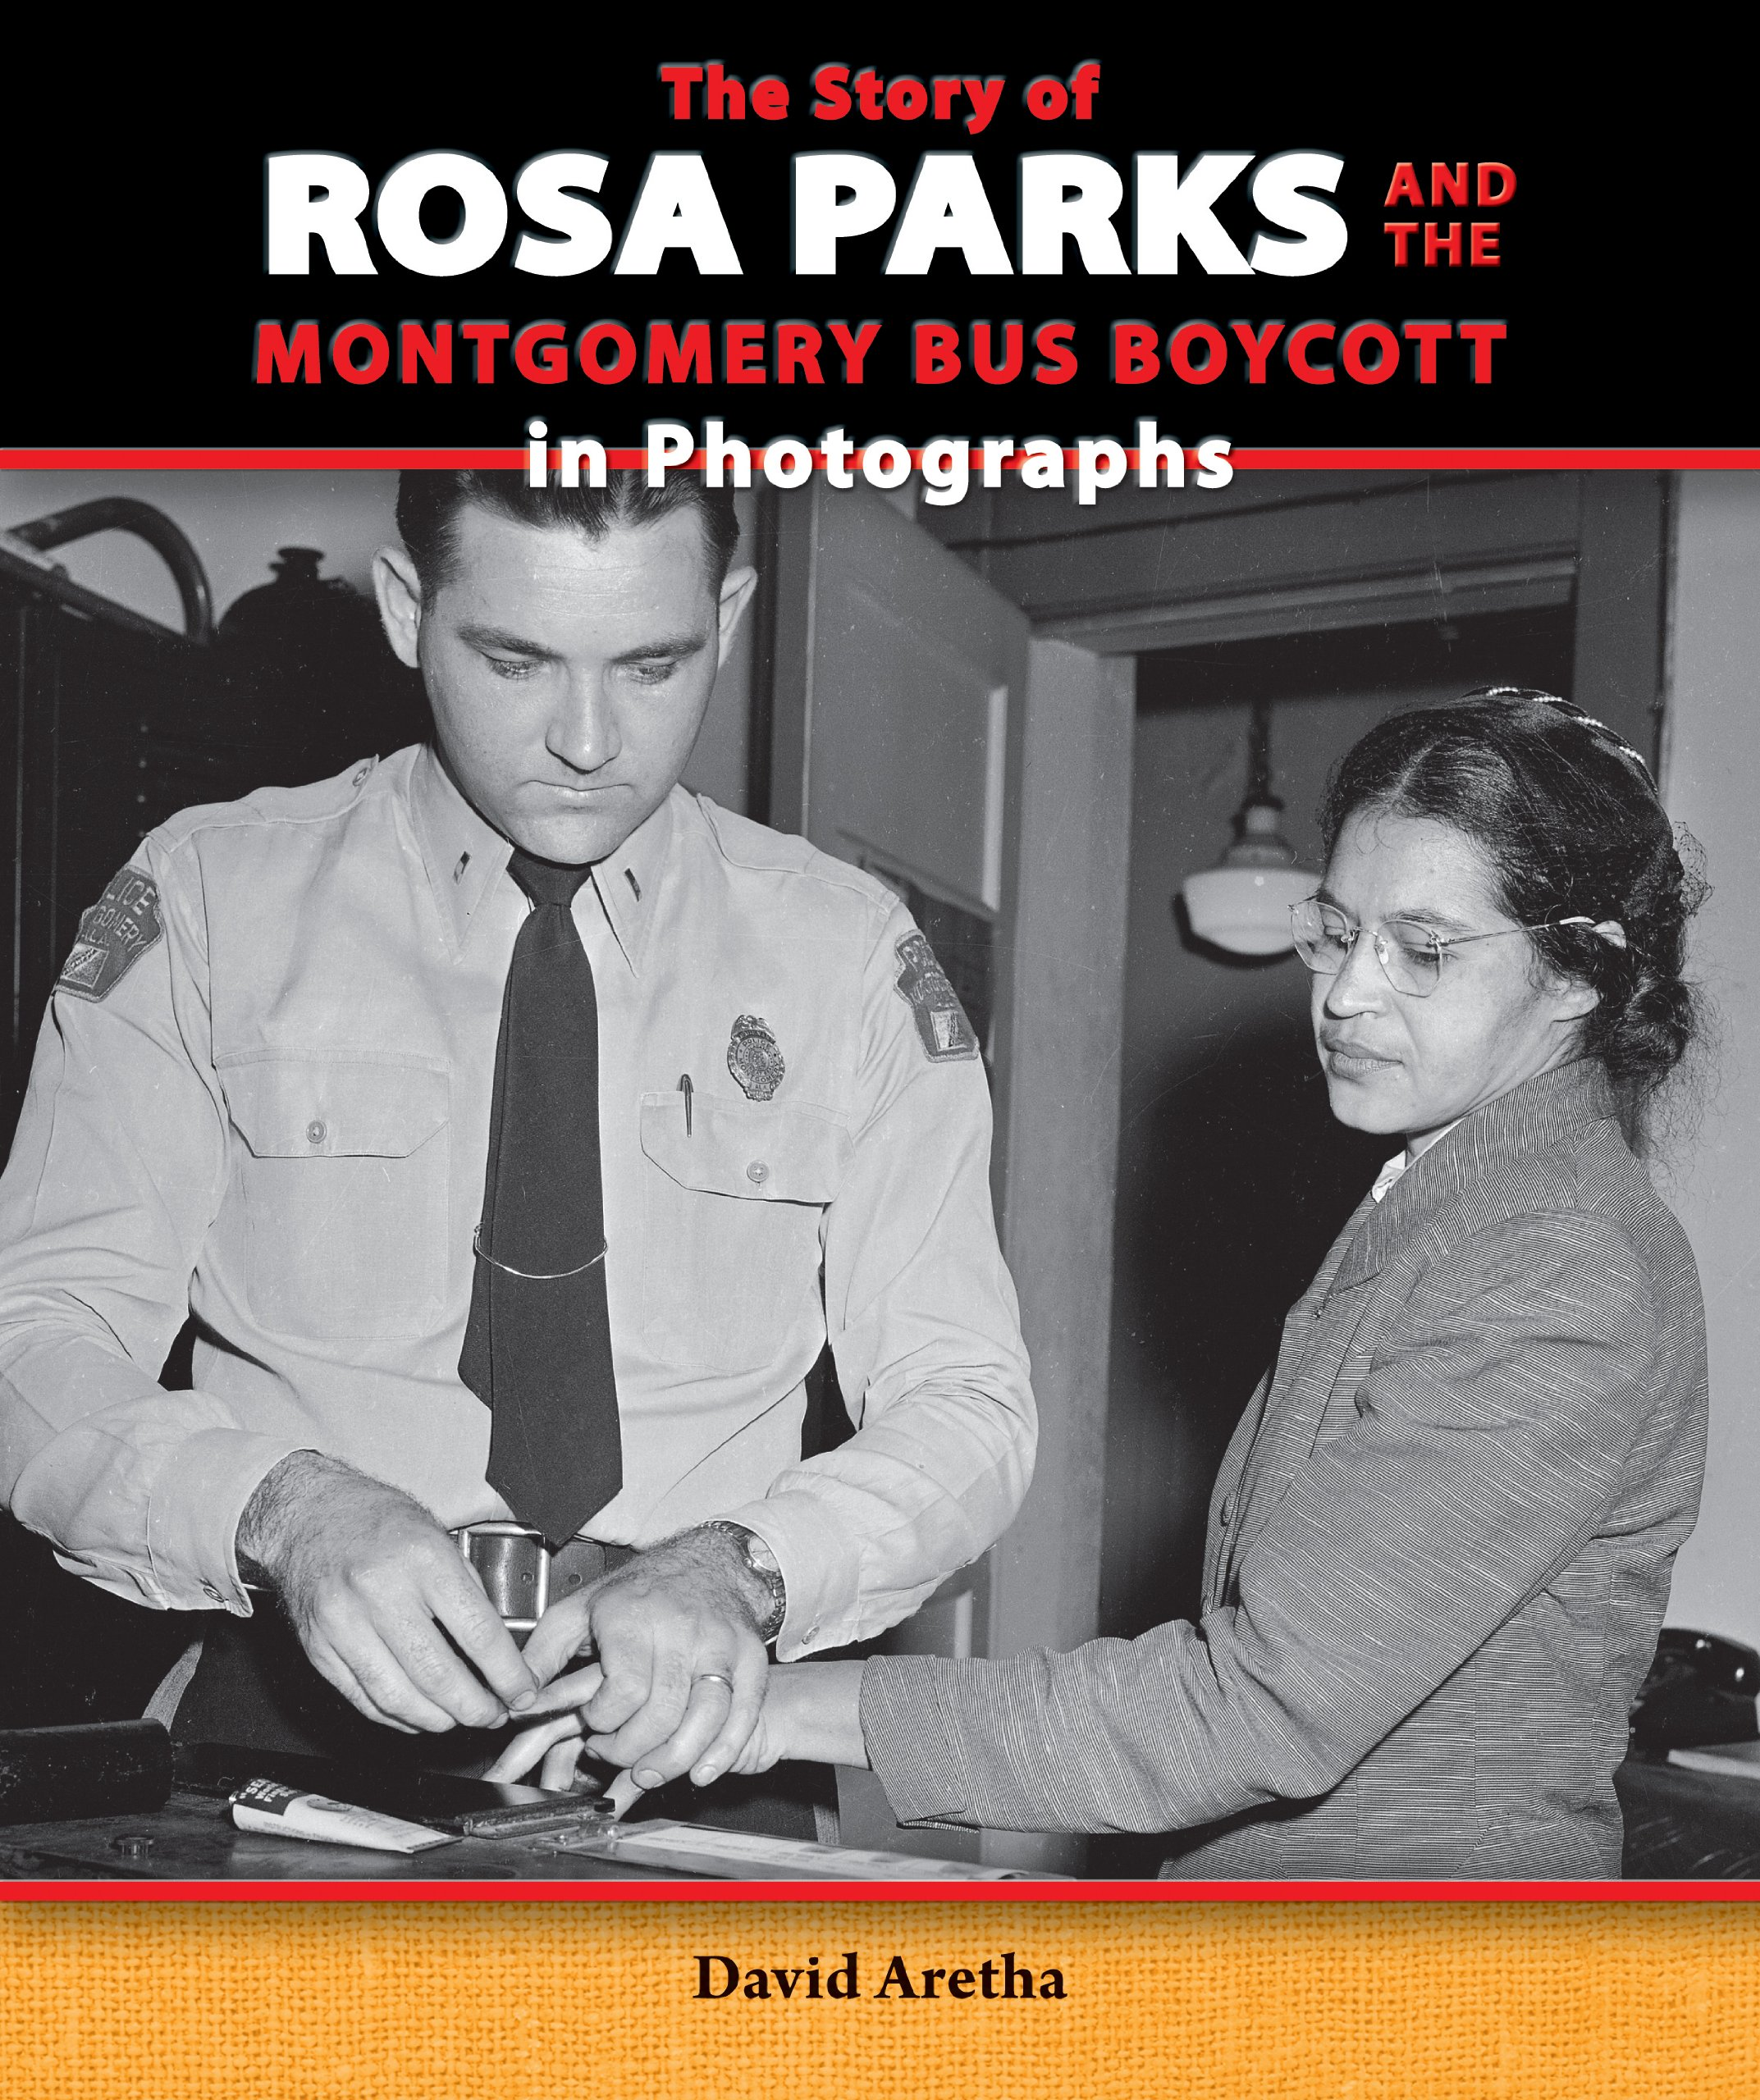 The Story of Rosa Parks and the Montgomery Bus Boycott in Photographs (The Story of the Civil Rights Movement in Photographs)